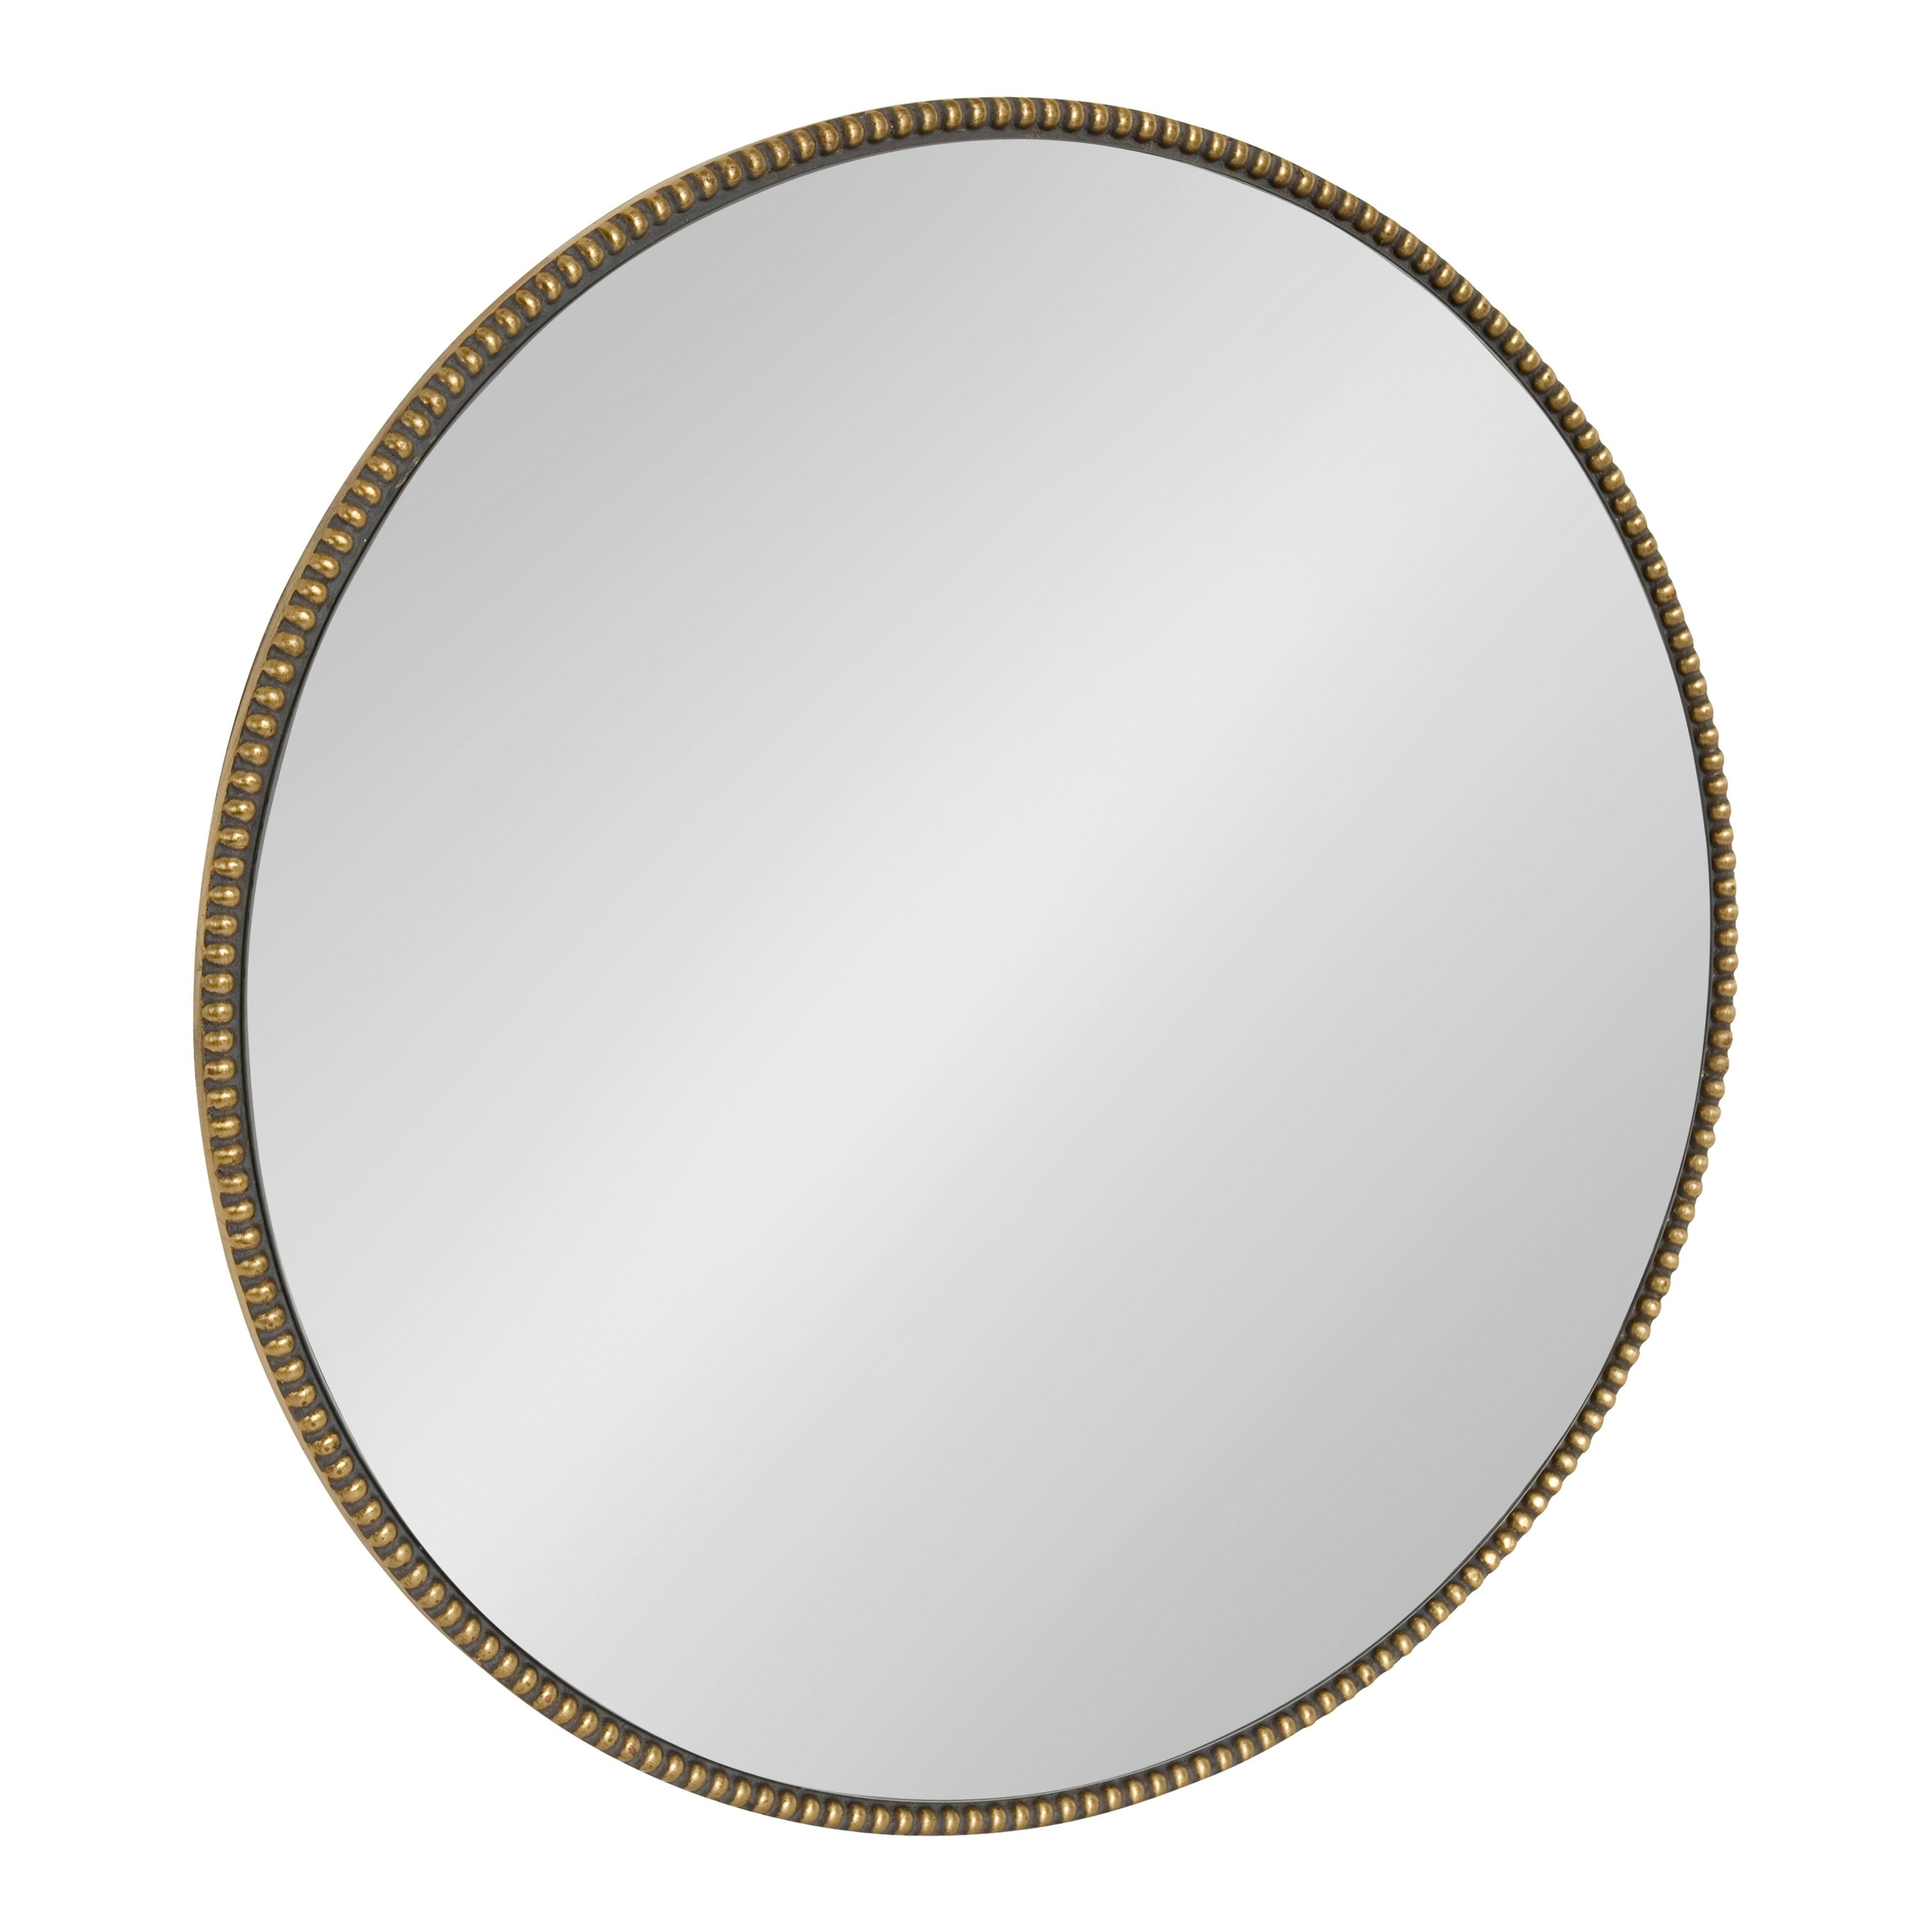 Shop Kate And Laurel Gwendolyn Round Beaded Accent Wall Intended For Beaded Accent Wall Mirrors (View 15 of 20)